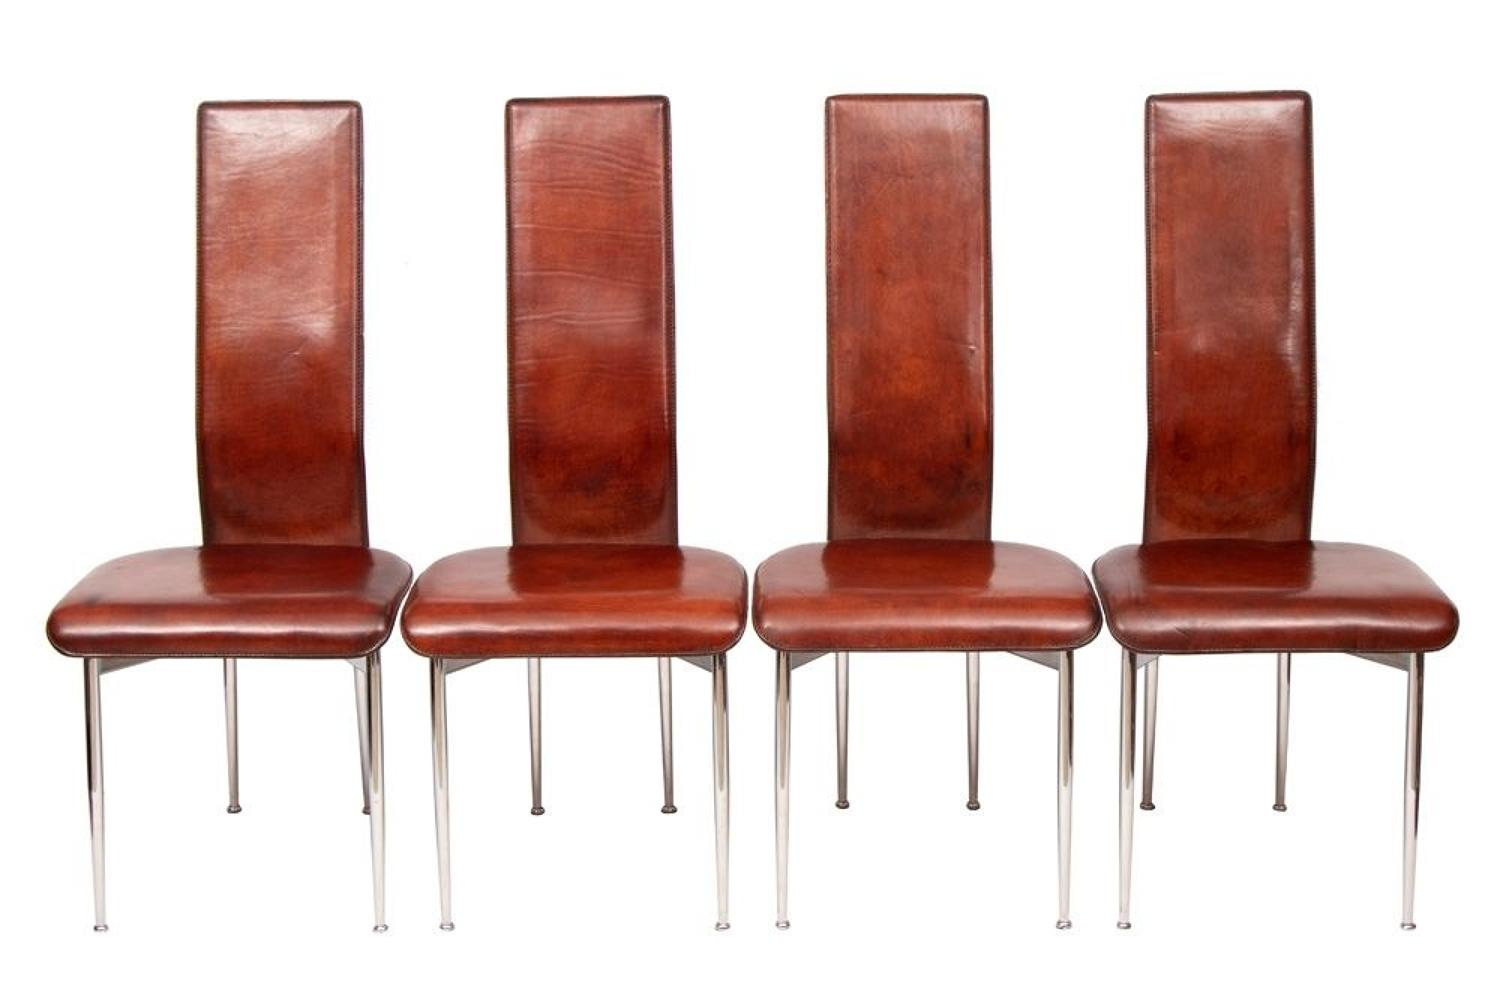 Set of 4 Leather S44 Dining Chairs by Giancarlo Vegni for Fasem c.1990